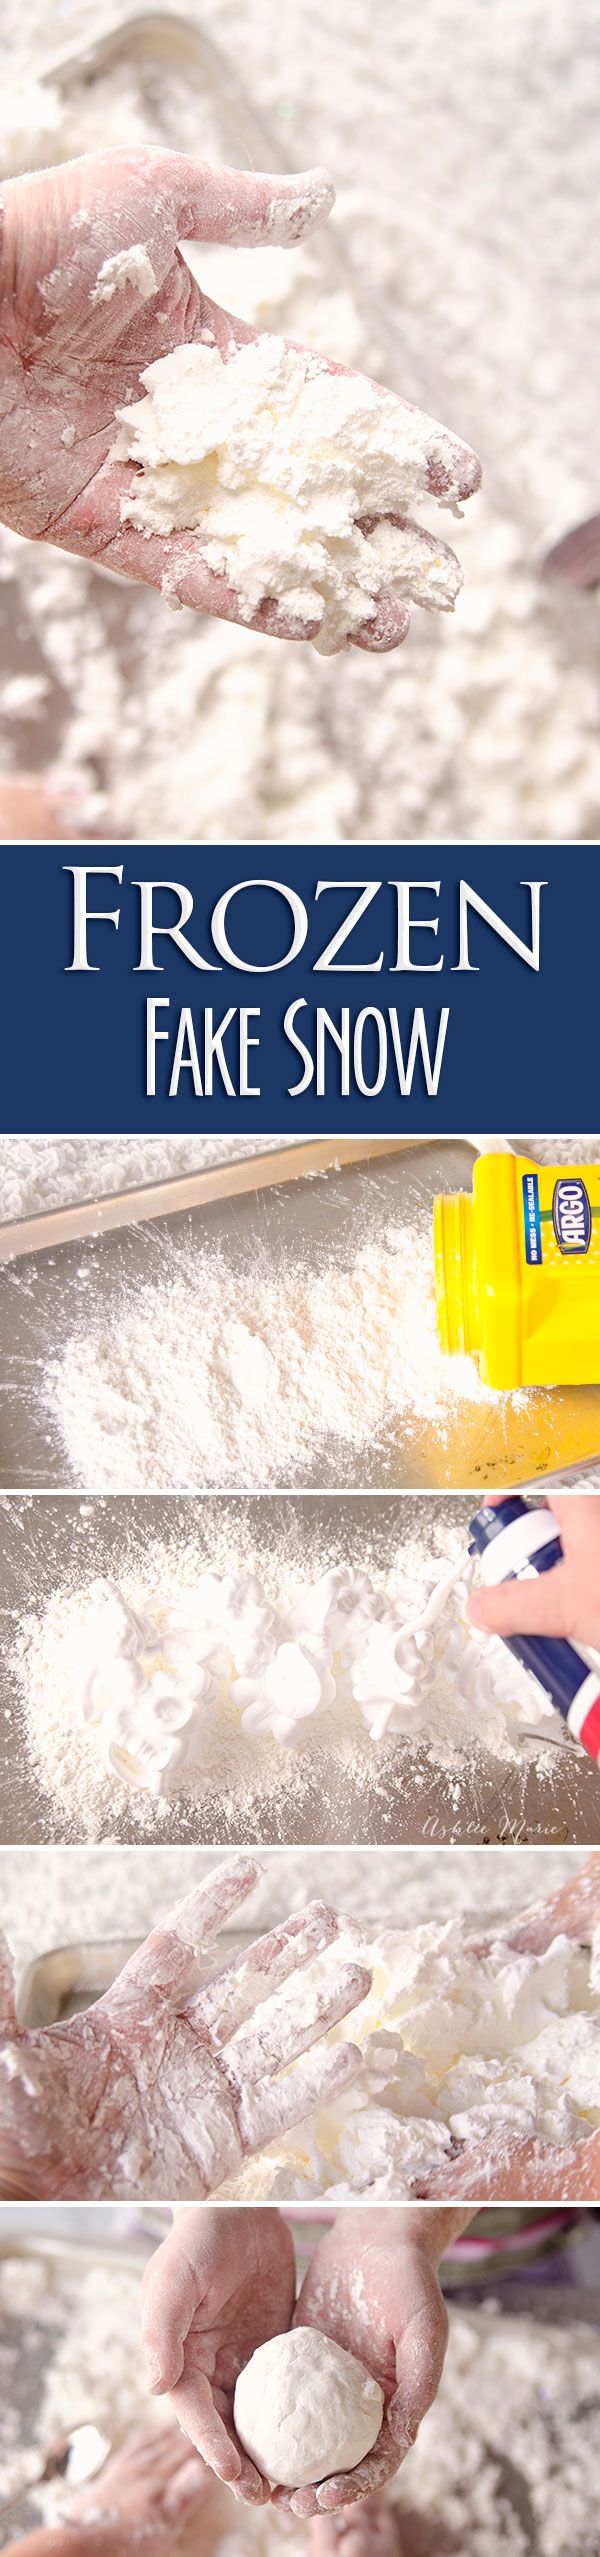 make fake snow, it's a fun sensory activity and keeps kids occupied